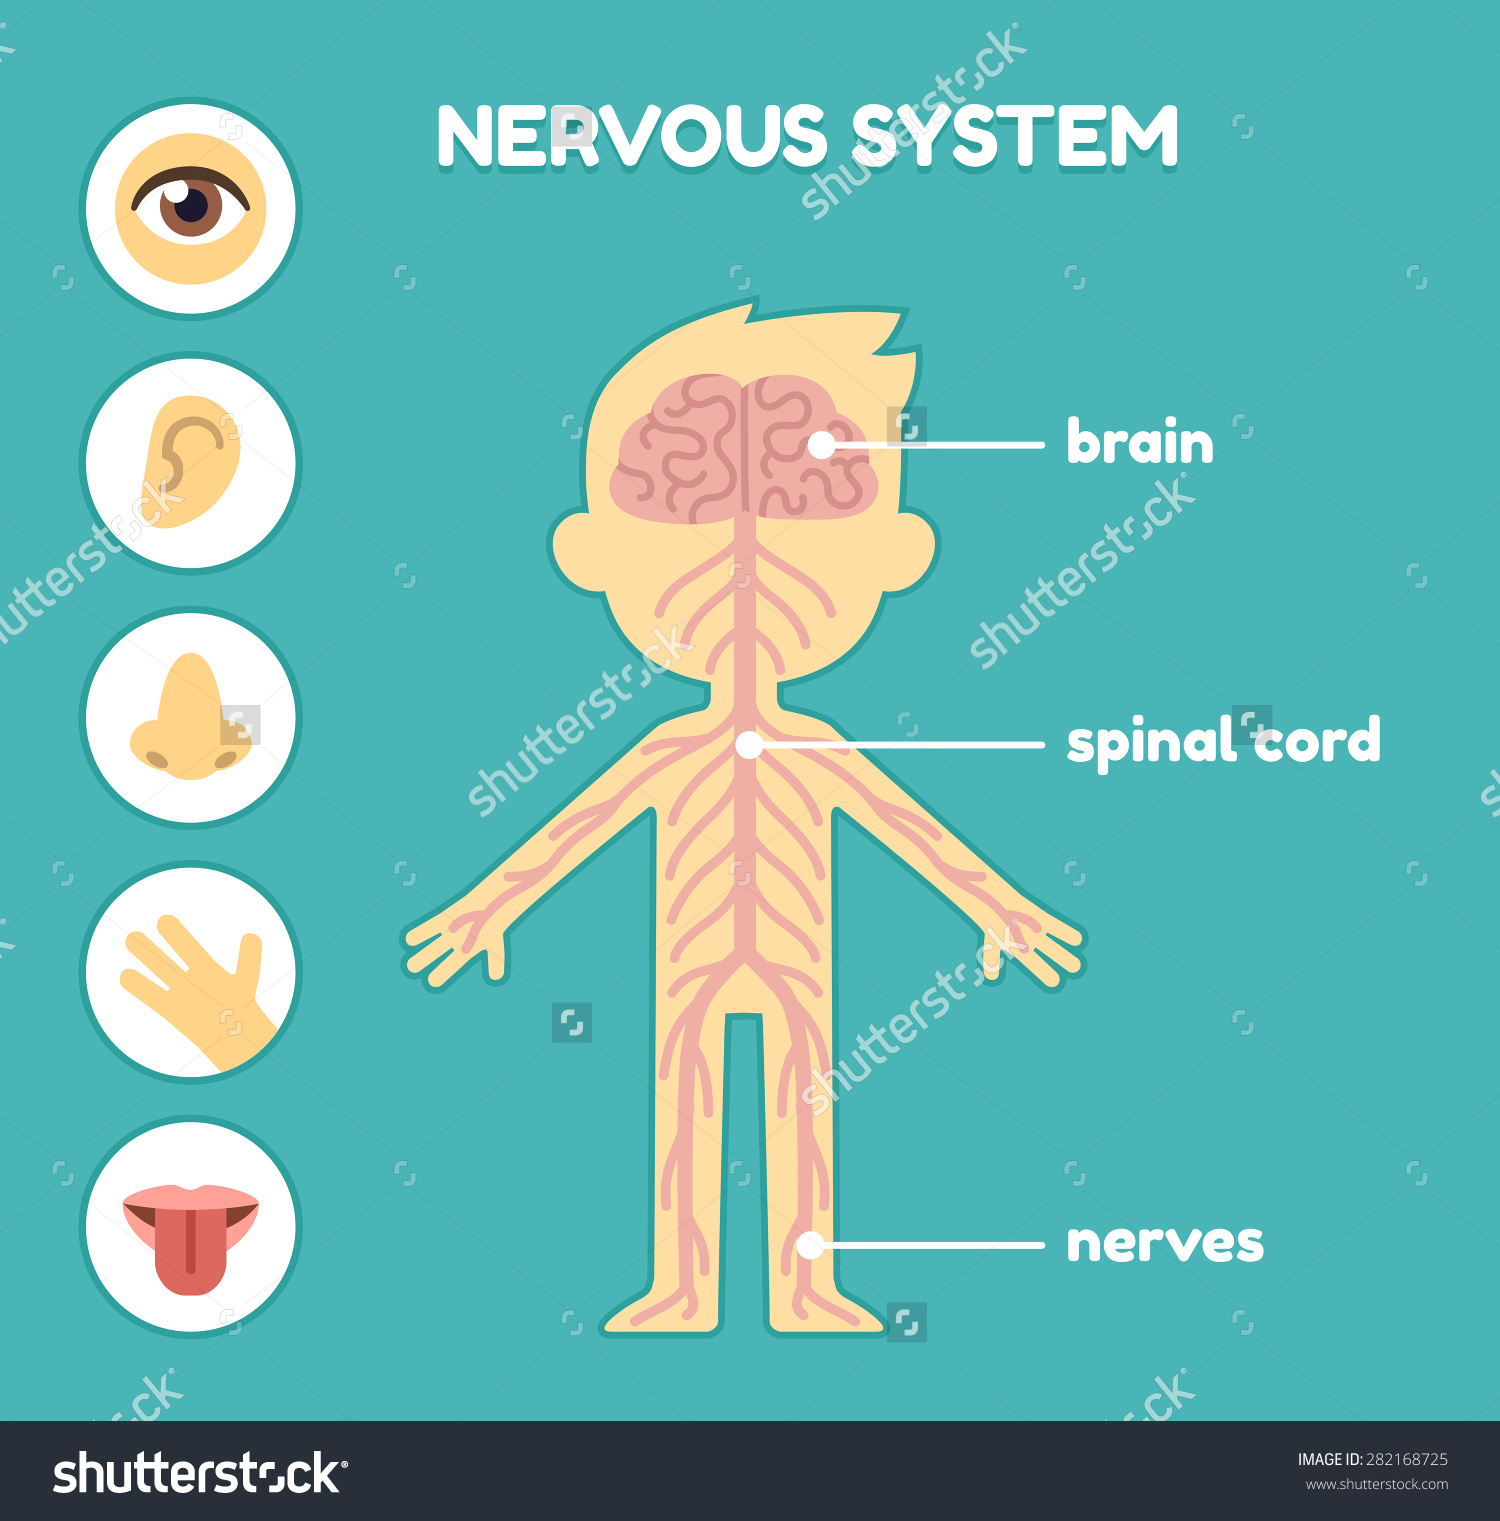 Nervous system on emaze ccuart Choice Image